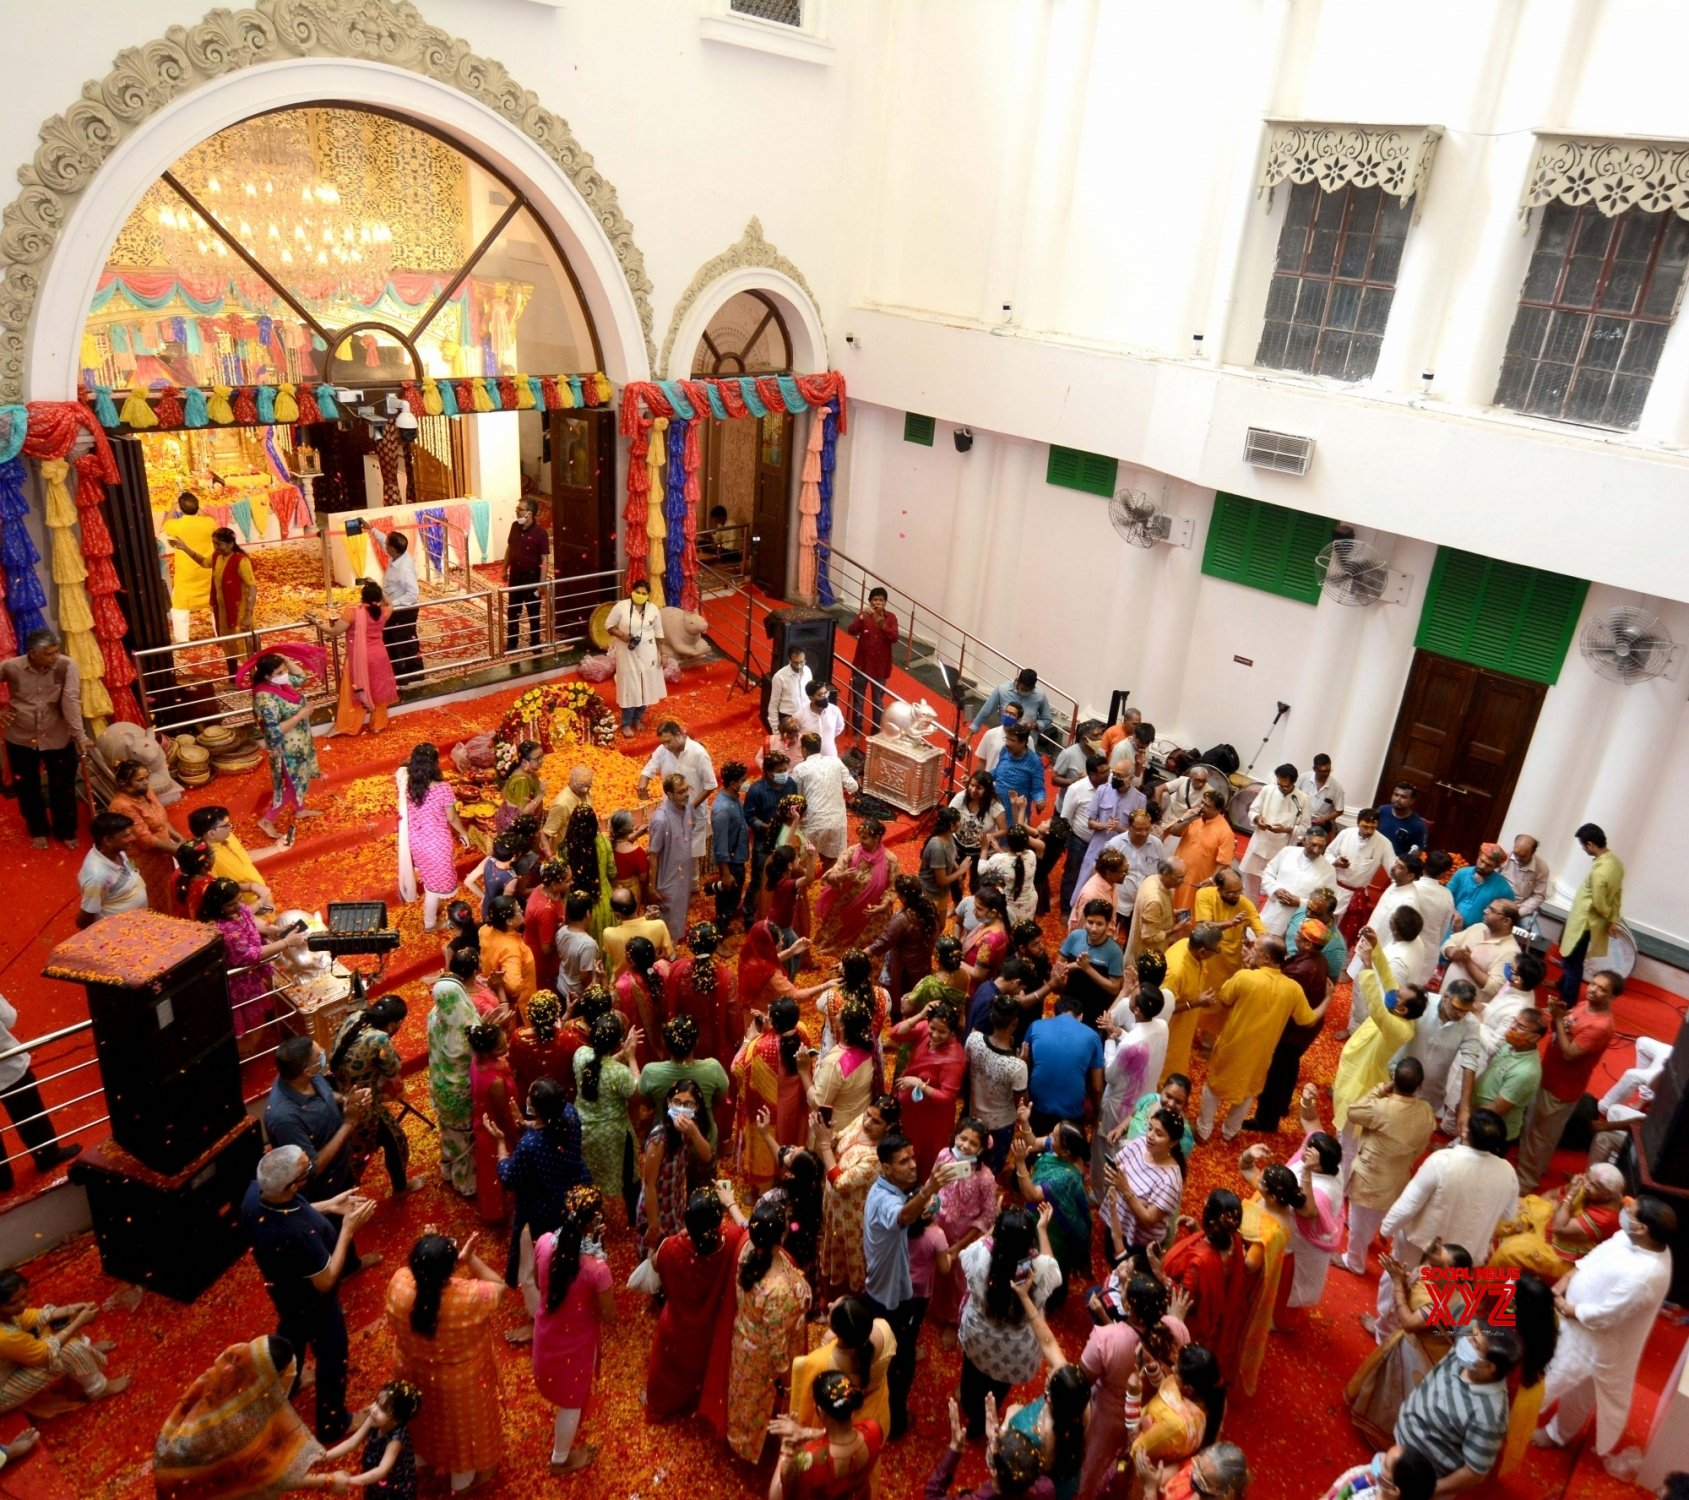 Kolkata: Devotees play with flower petals called 'Phool Dol' or Holi celebrations at Ganesh temple #Gallery